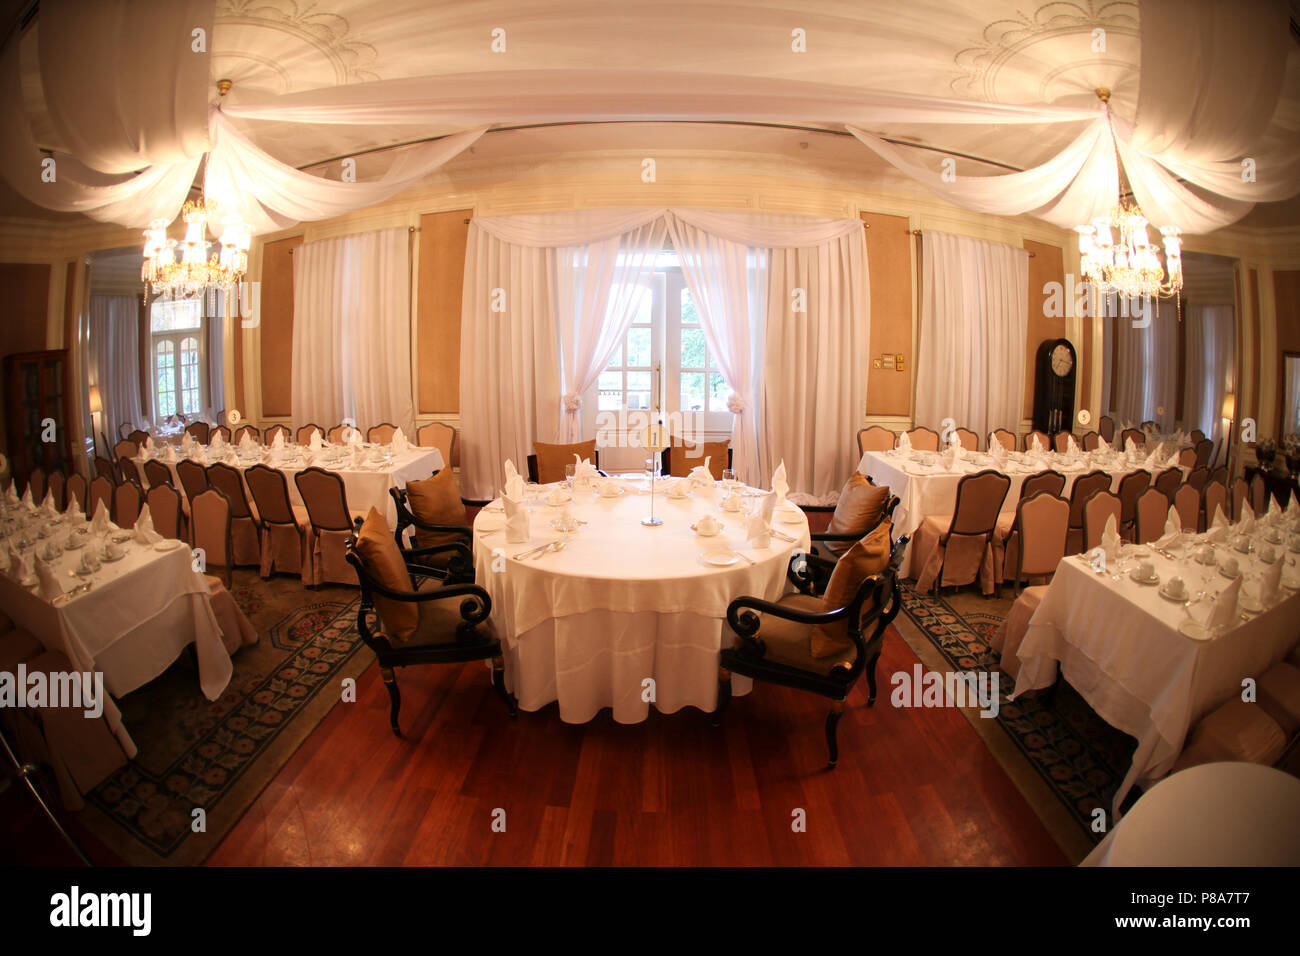 Seating layout of a wedding with the round bridal table in the centre of a colonial dining room with white sheer ceiling drapes, white tablecloths and... - Stock Image